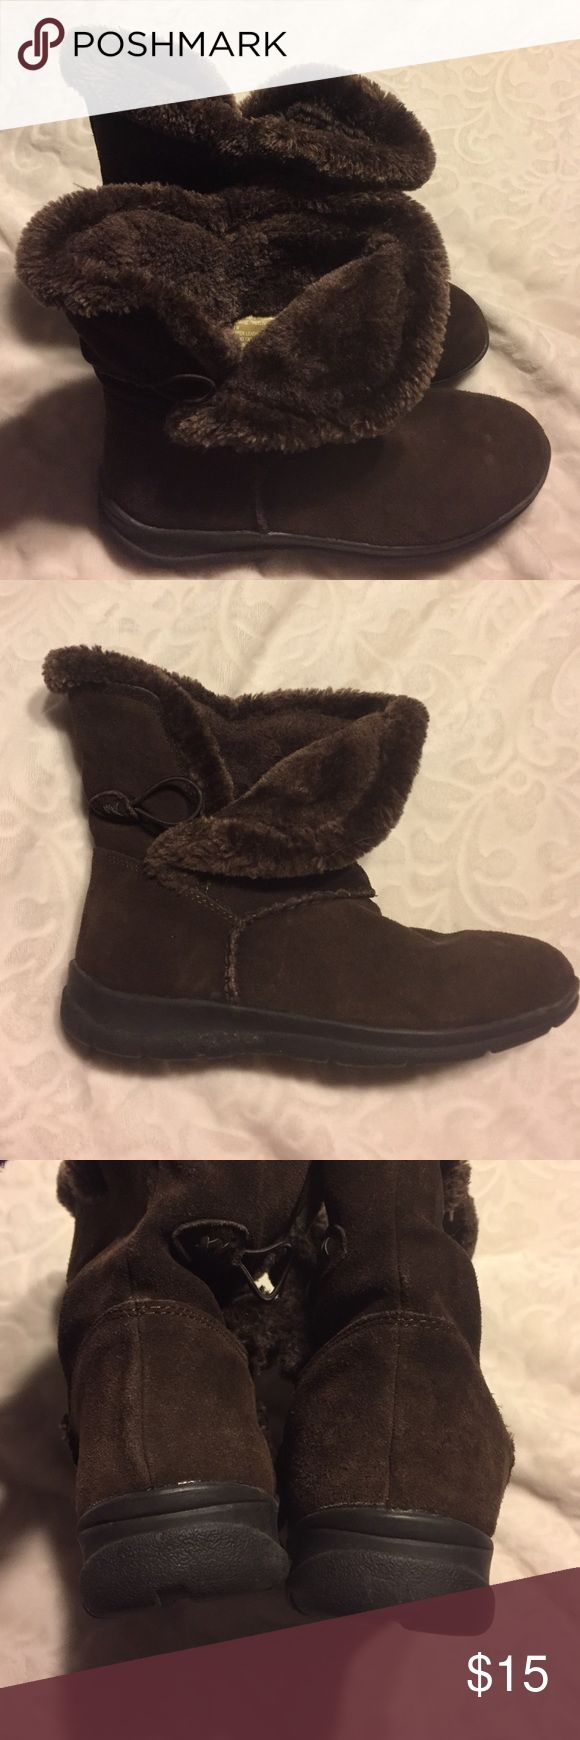 White mountain winter boots Good condition, fur-like inside Shoes Winter & Rain Boots